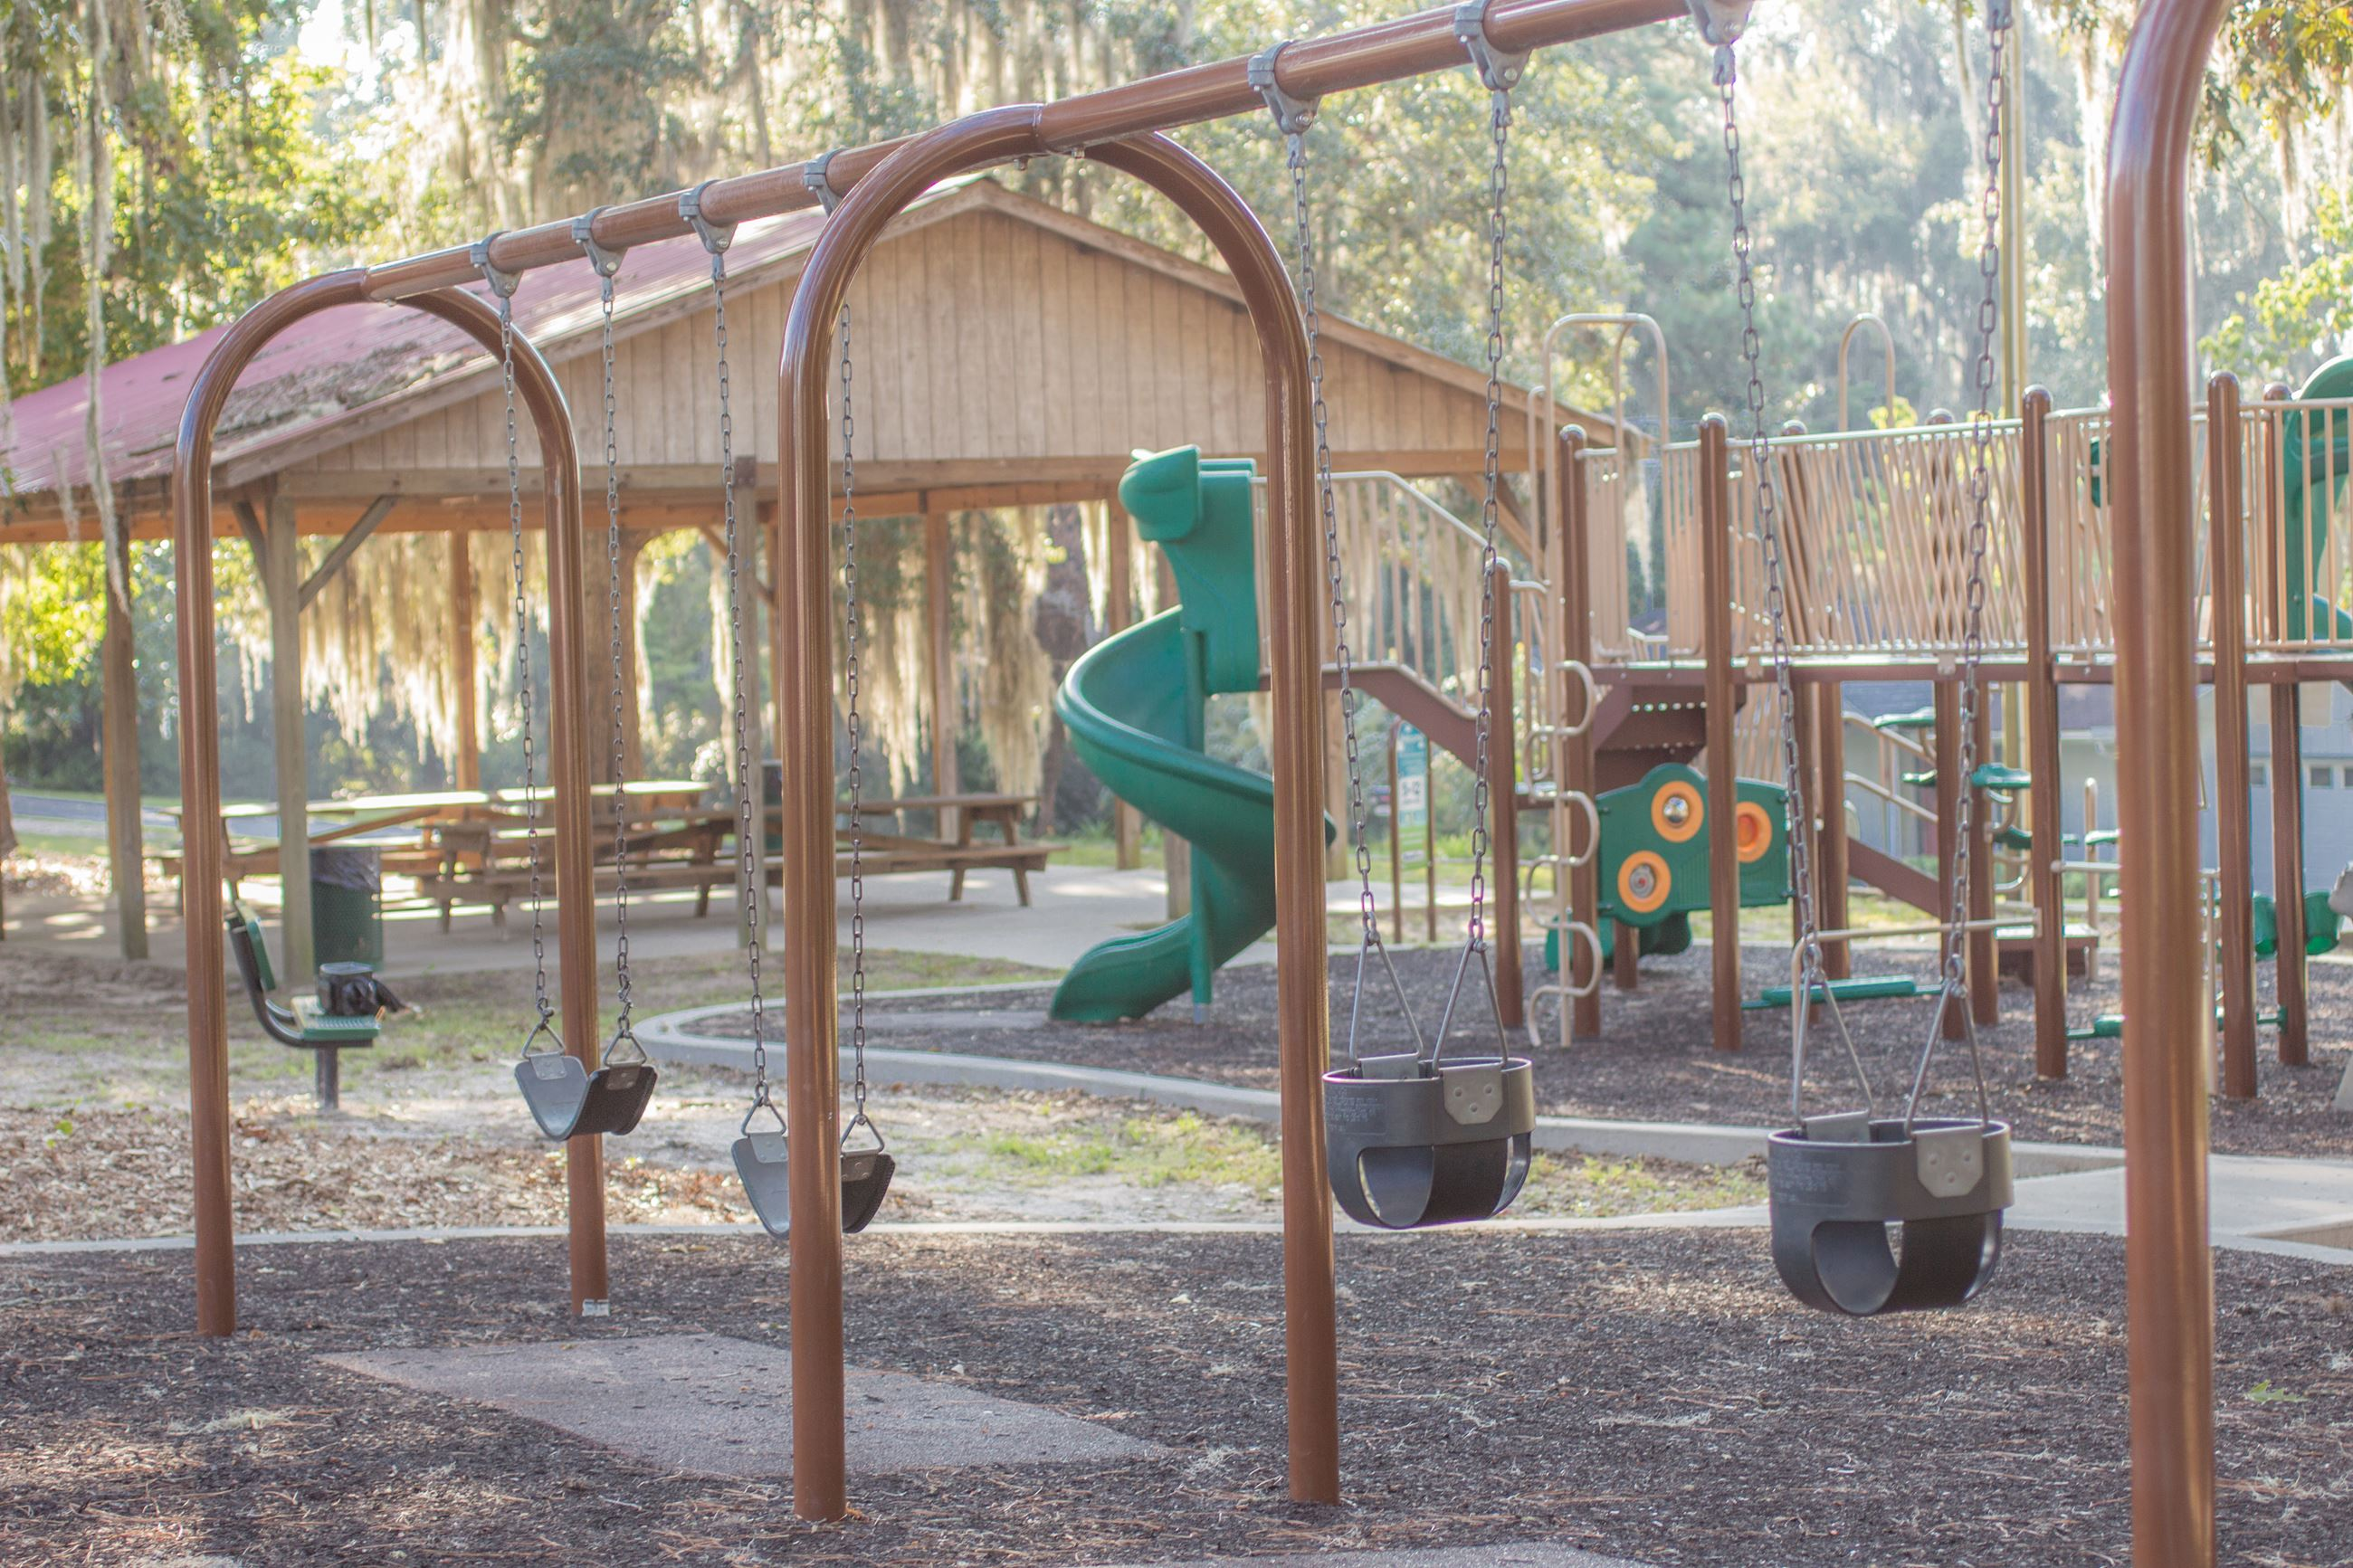 An image of a swing set in front of a playground.